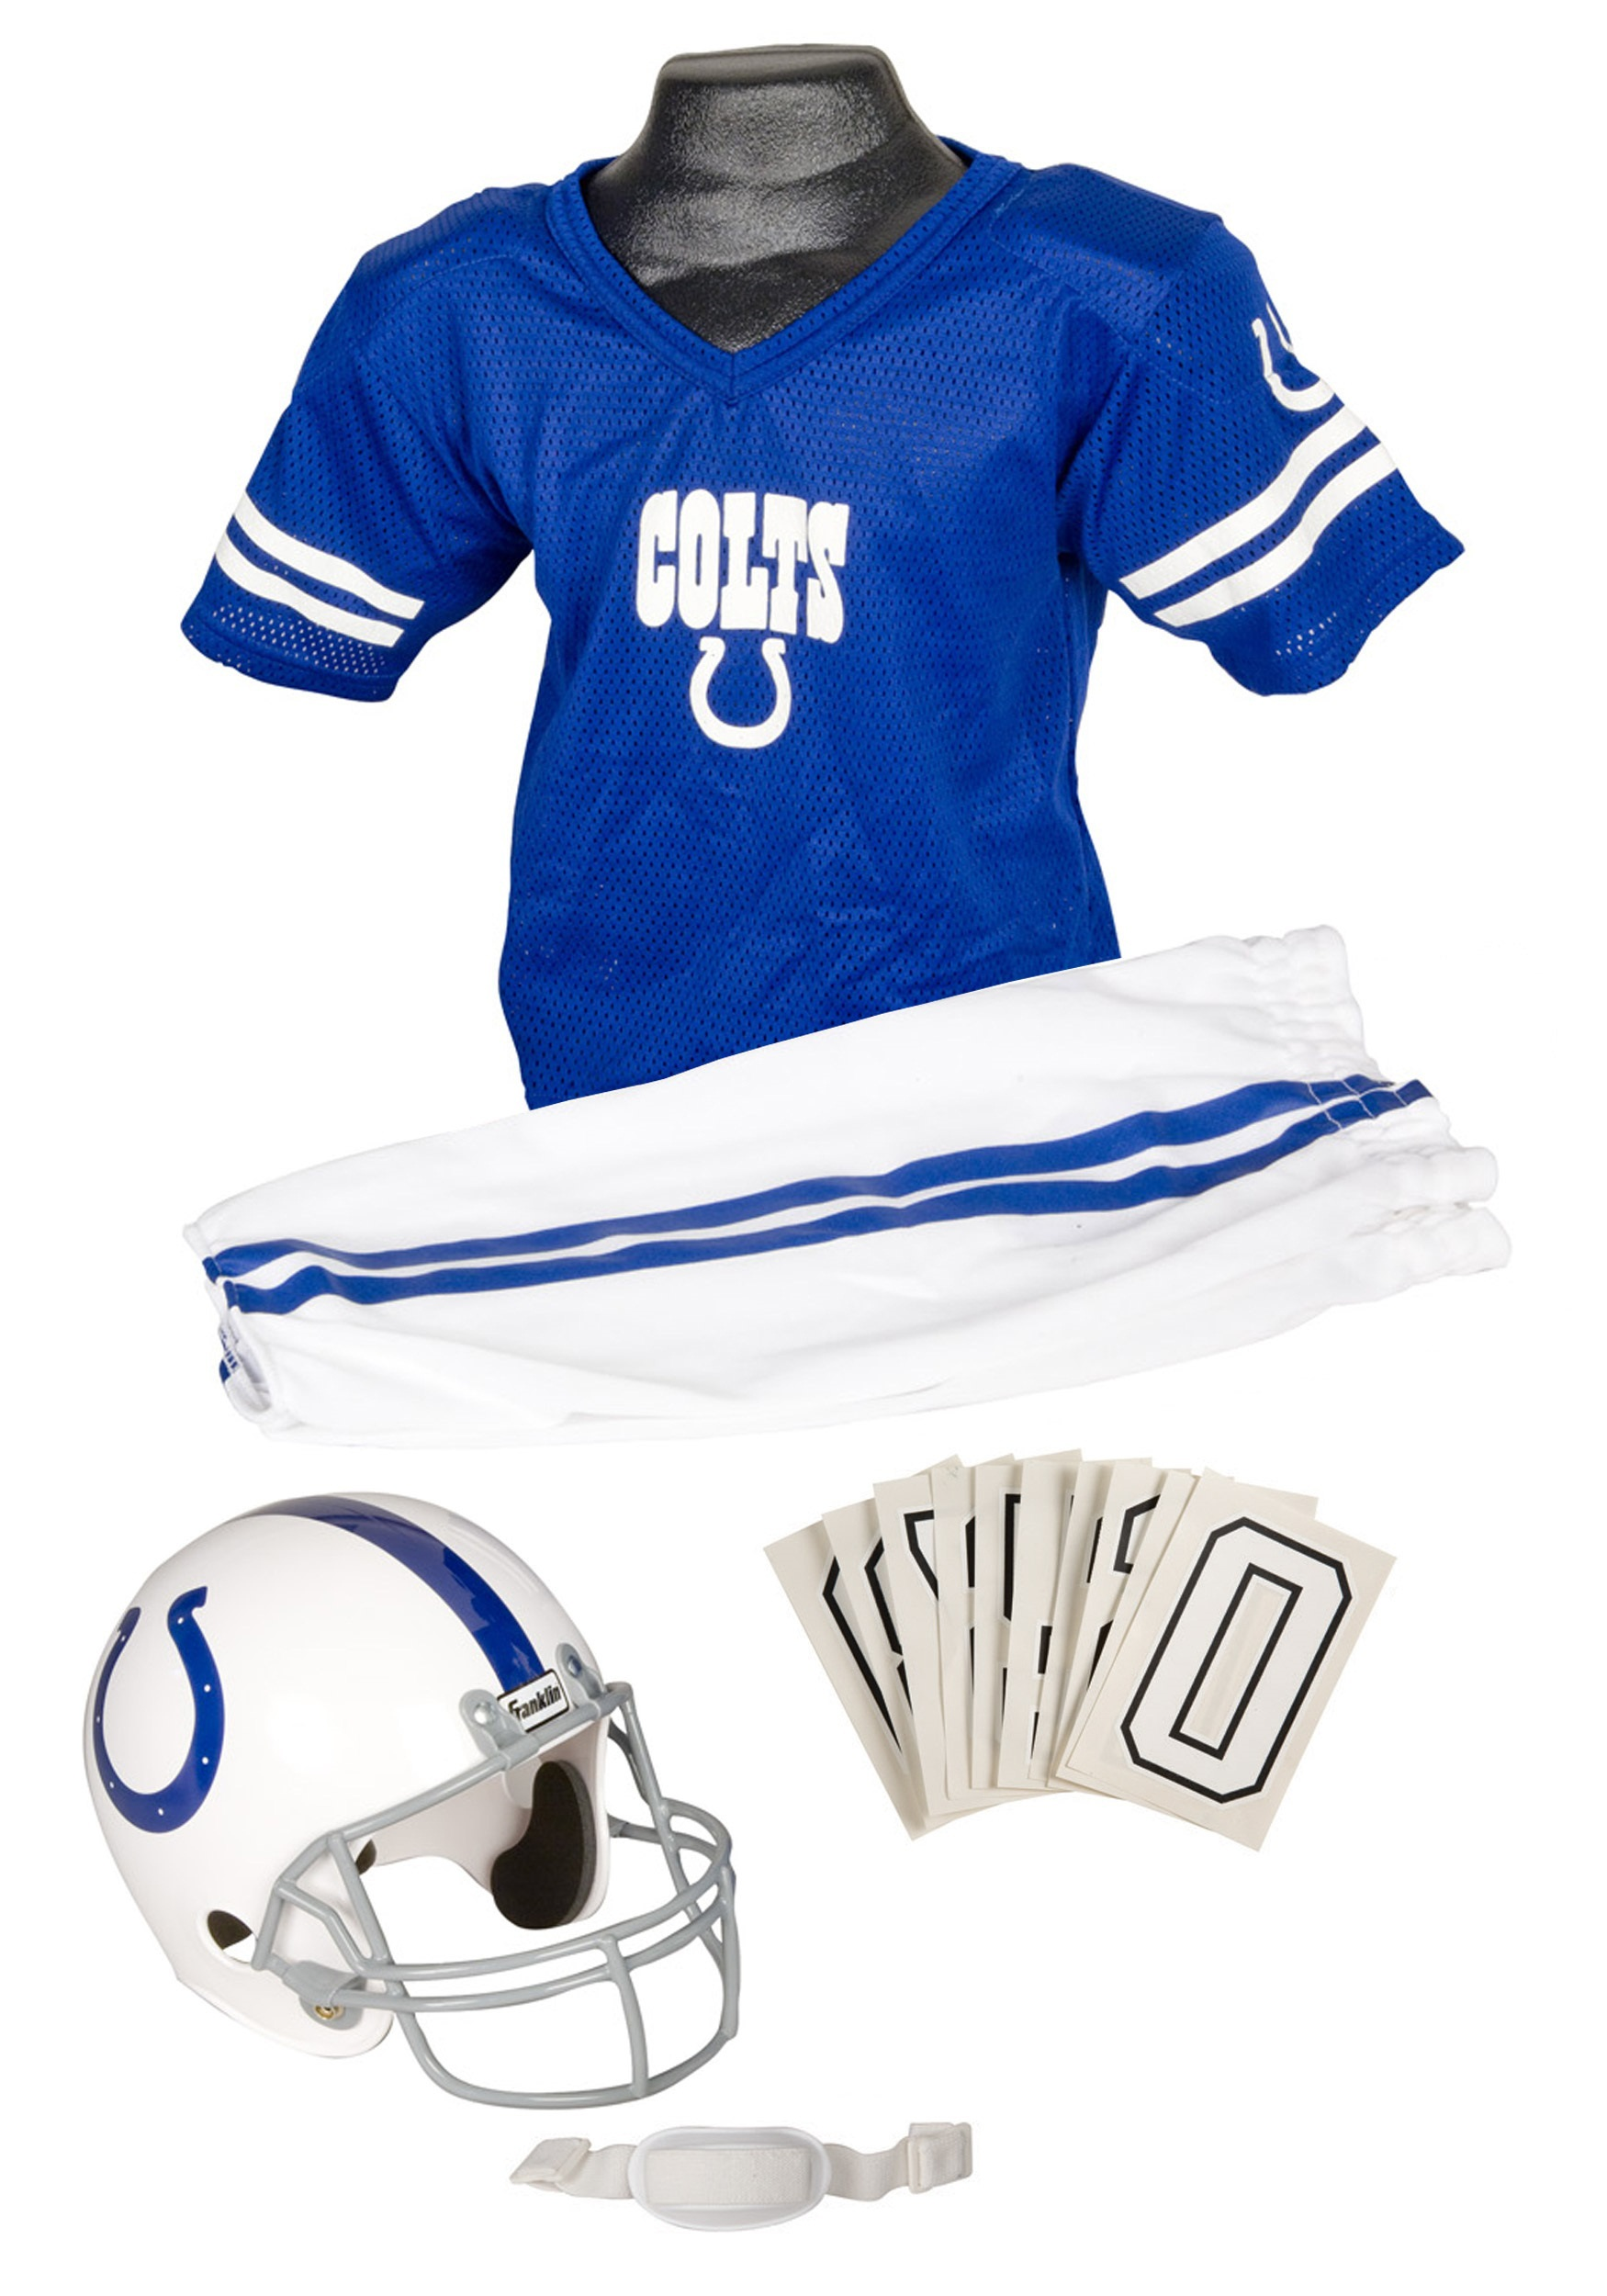 NFL Indianapolis Colts Uniform Set FA15700F20